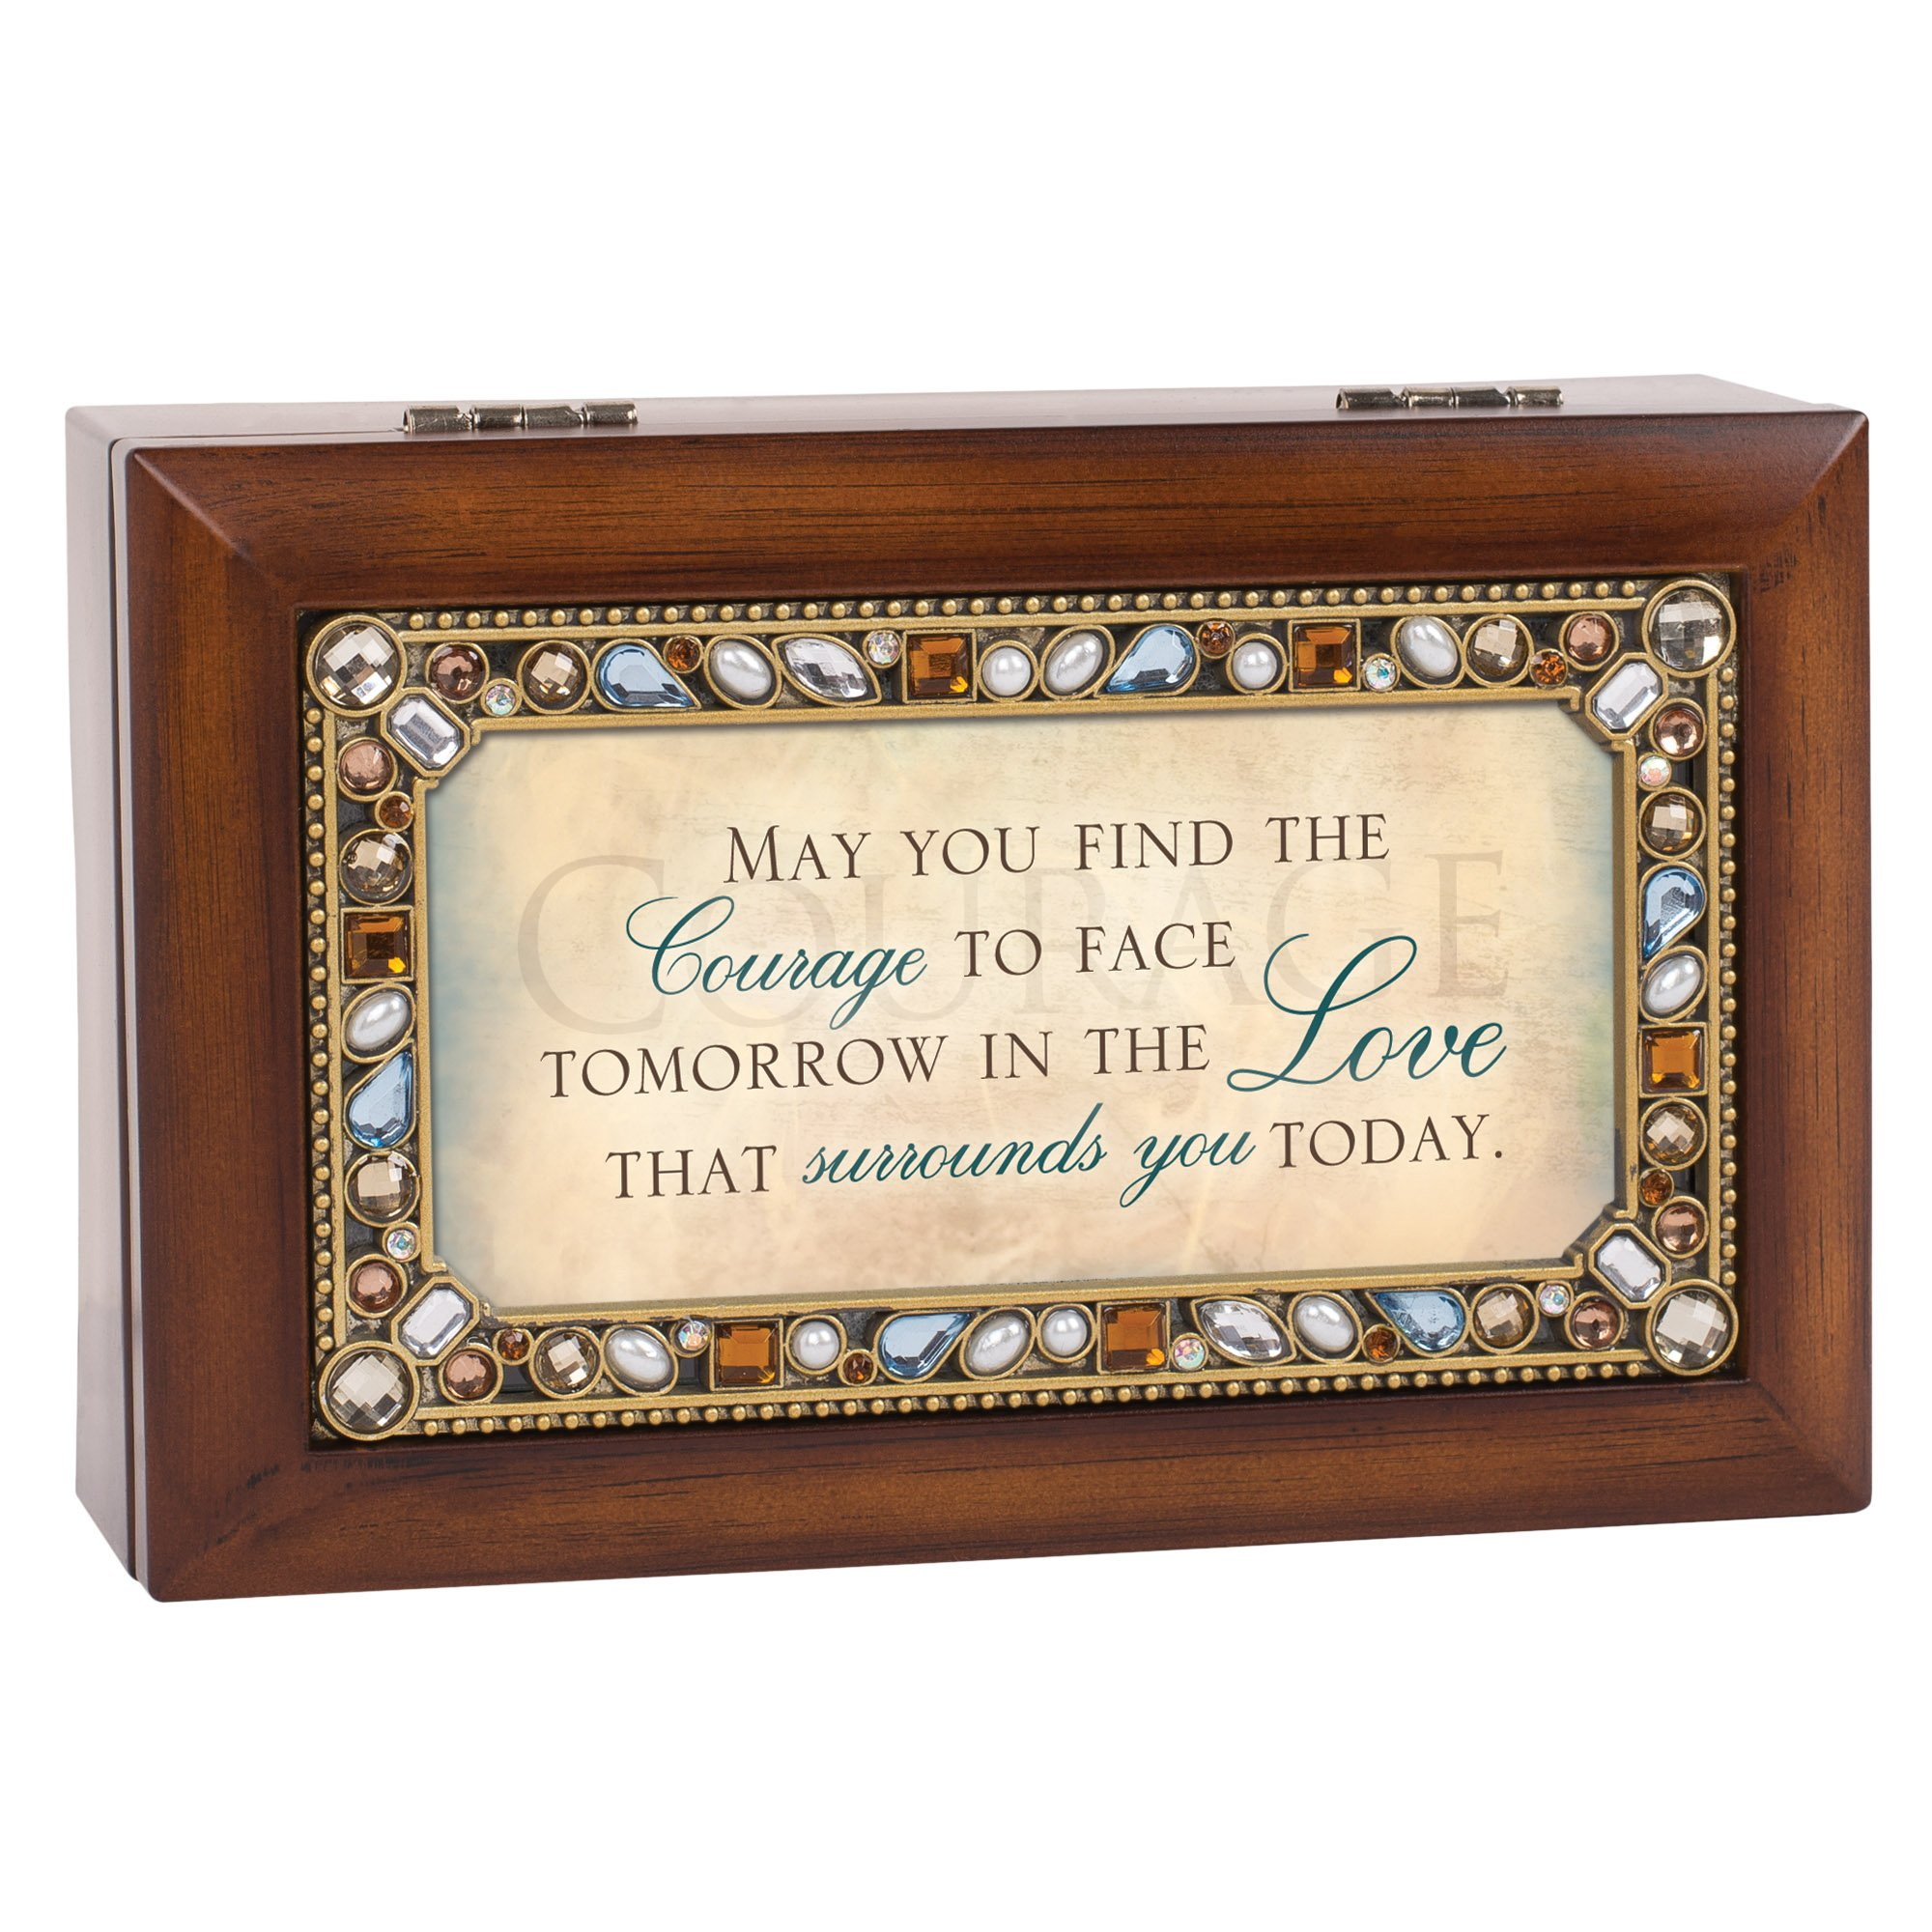 May You Find The Courage Jeweled Woodgrain Jewelry Music Box - Plays Tune Wind Beneath My Wings by Cottage Garden (Image #3)